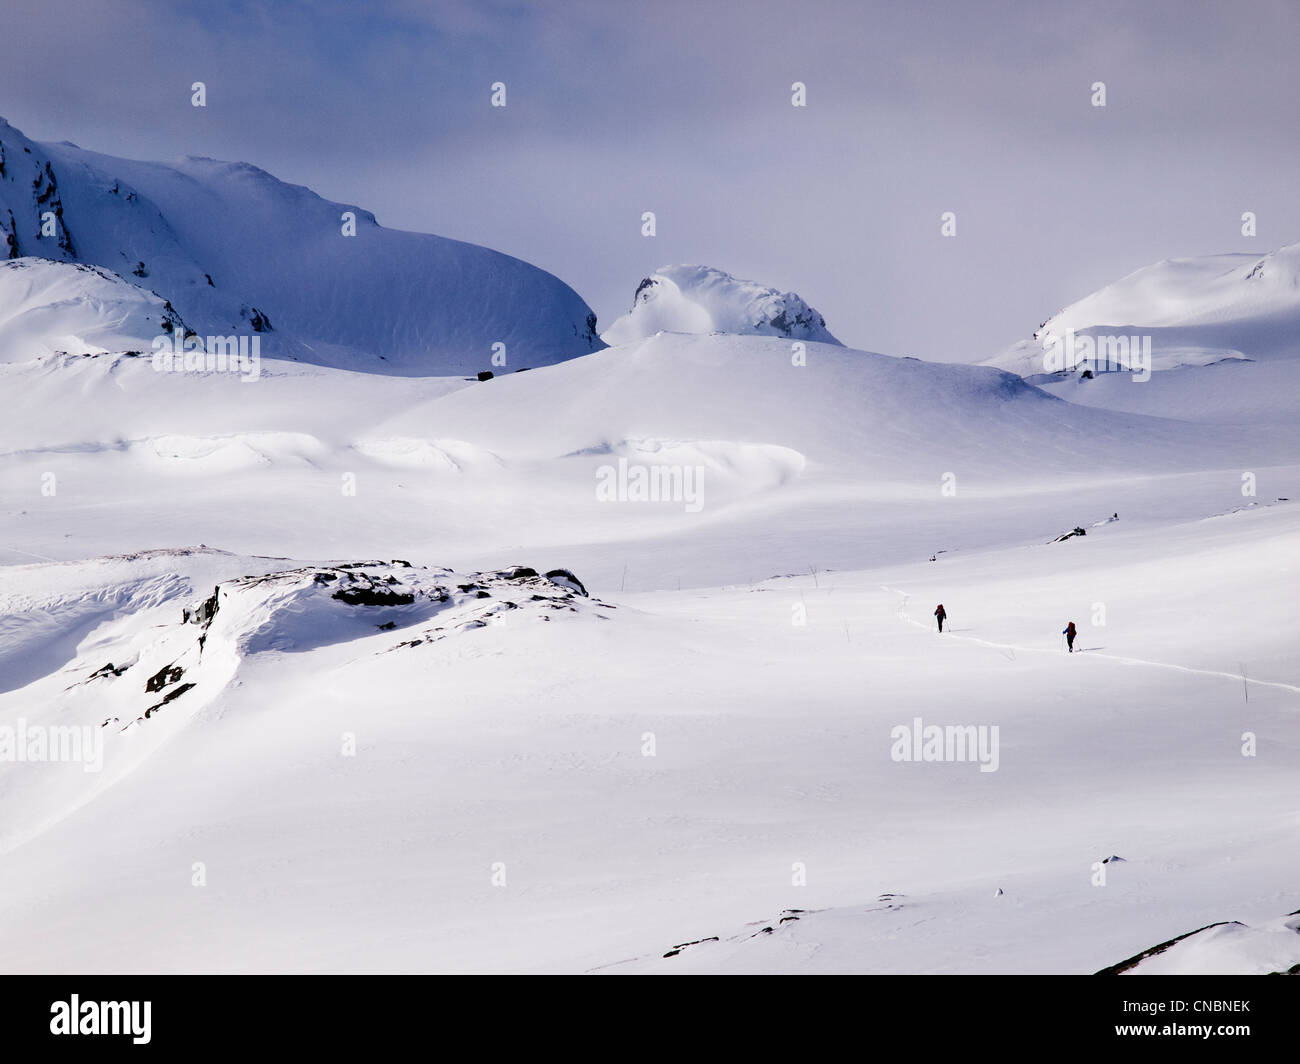 2 people ski touring in the Hardanger region of Norway - Stock Image